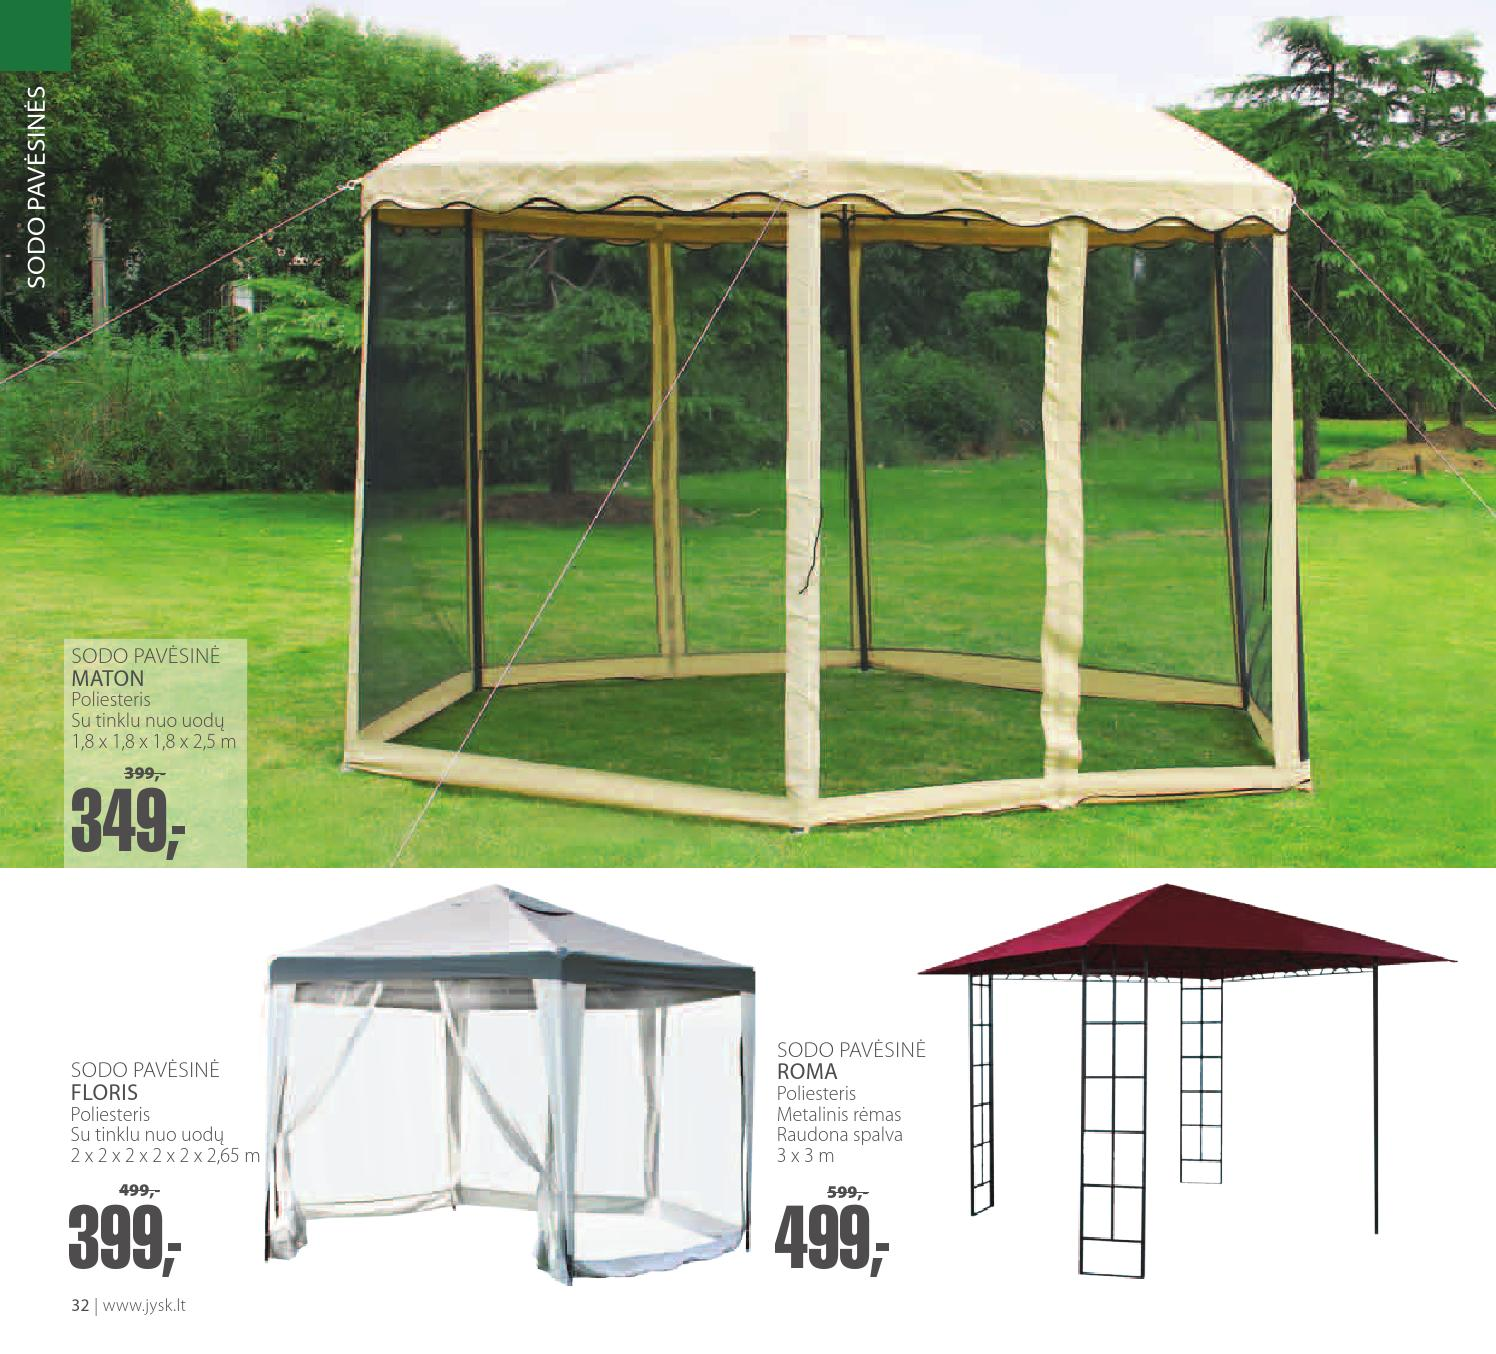 Jysk Tent Jysk Lithuania Summer Catalogue 2014 By Jysk Issuu